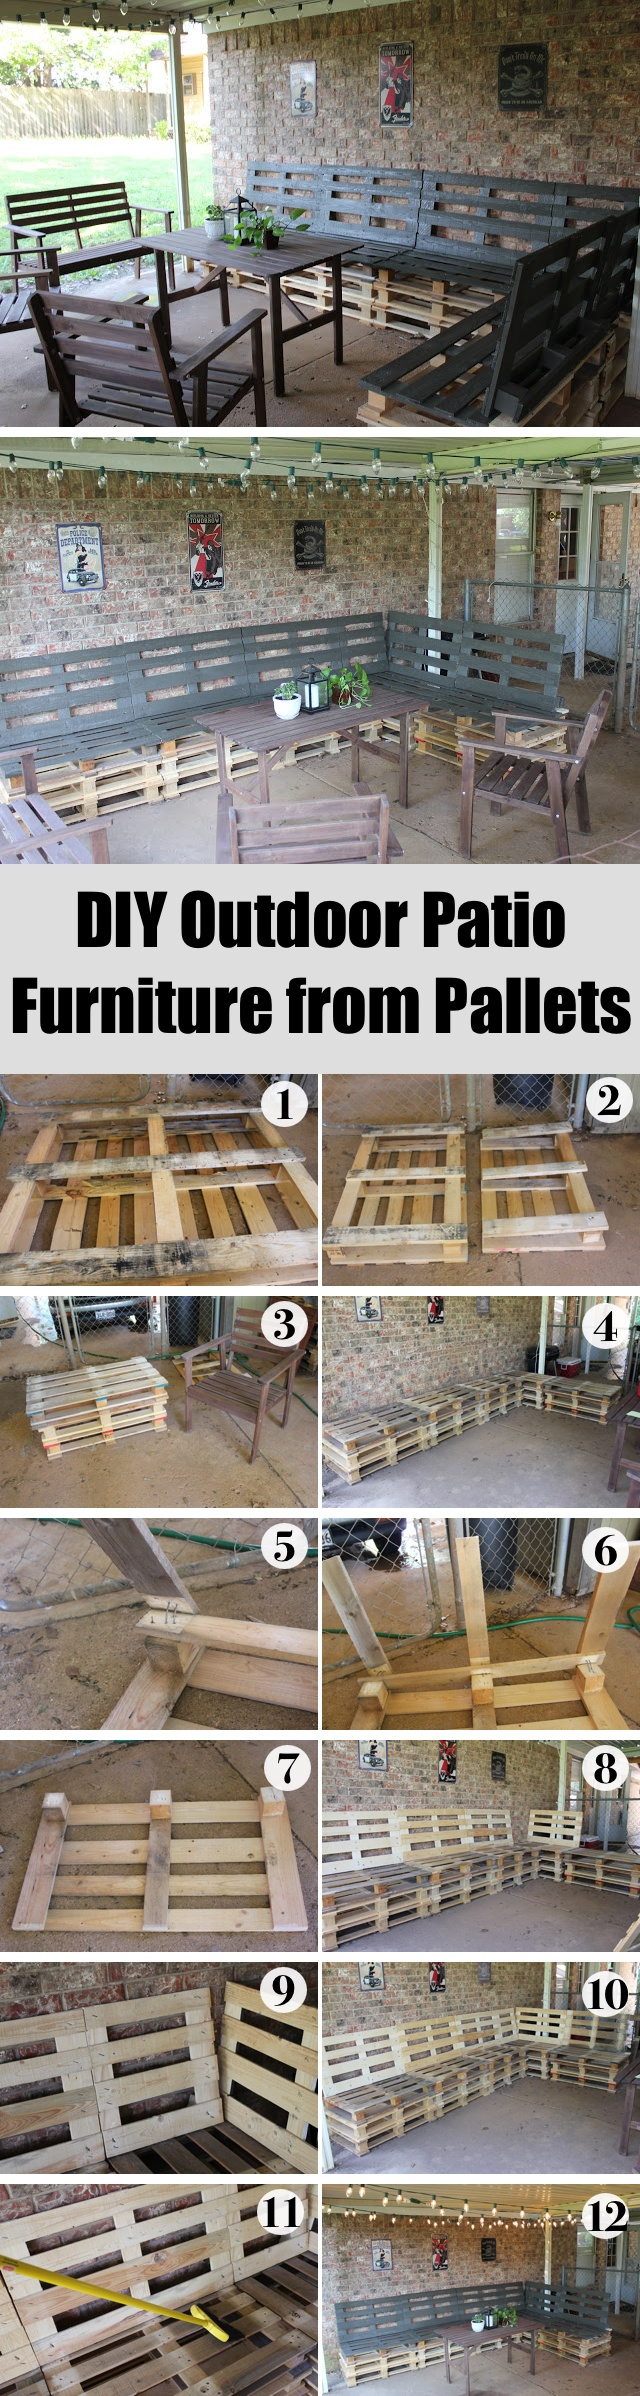 Patio Furniture from pallets, pallet furniture, how to make furniture from pallets